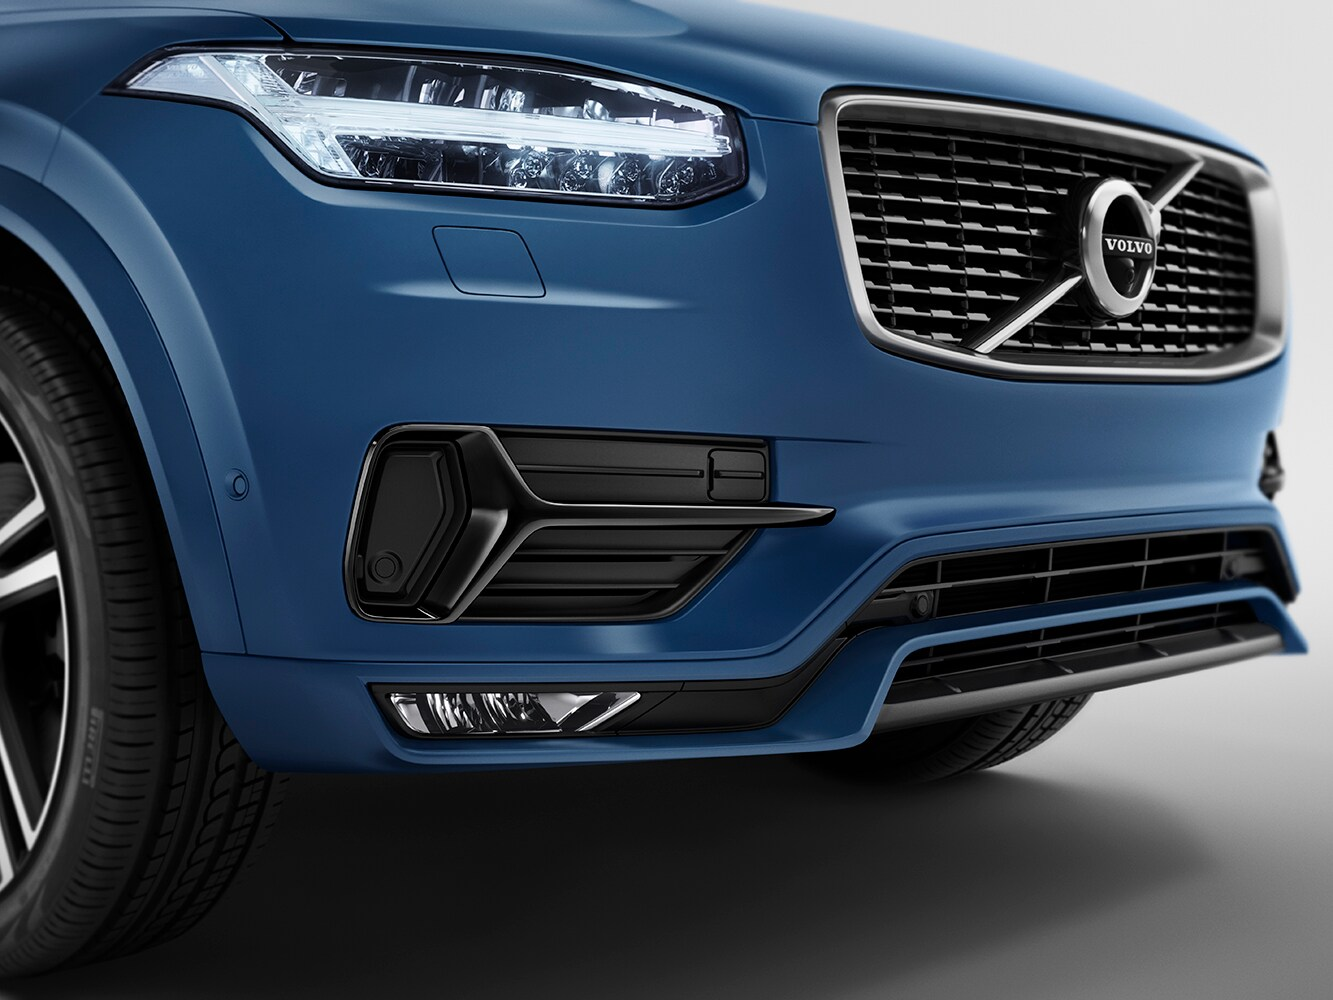 Close up view of front grille on a Volvo XC90 R-Design showing the glossy black inserts